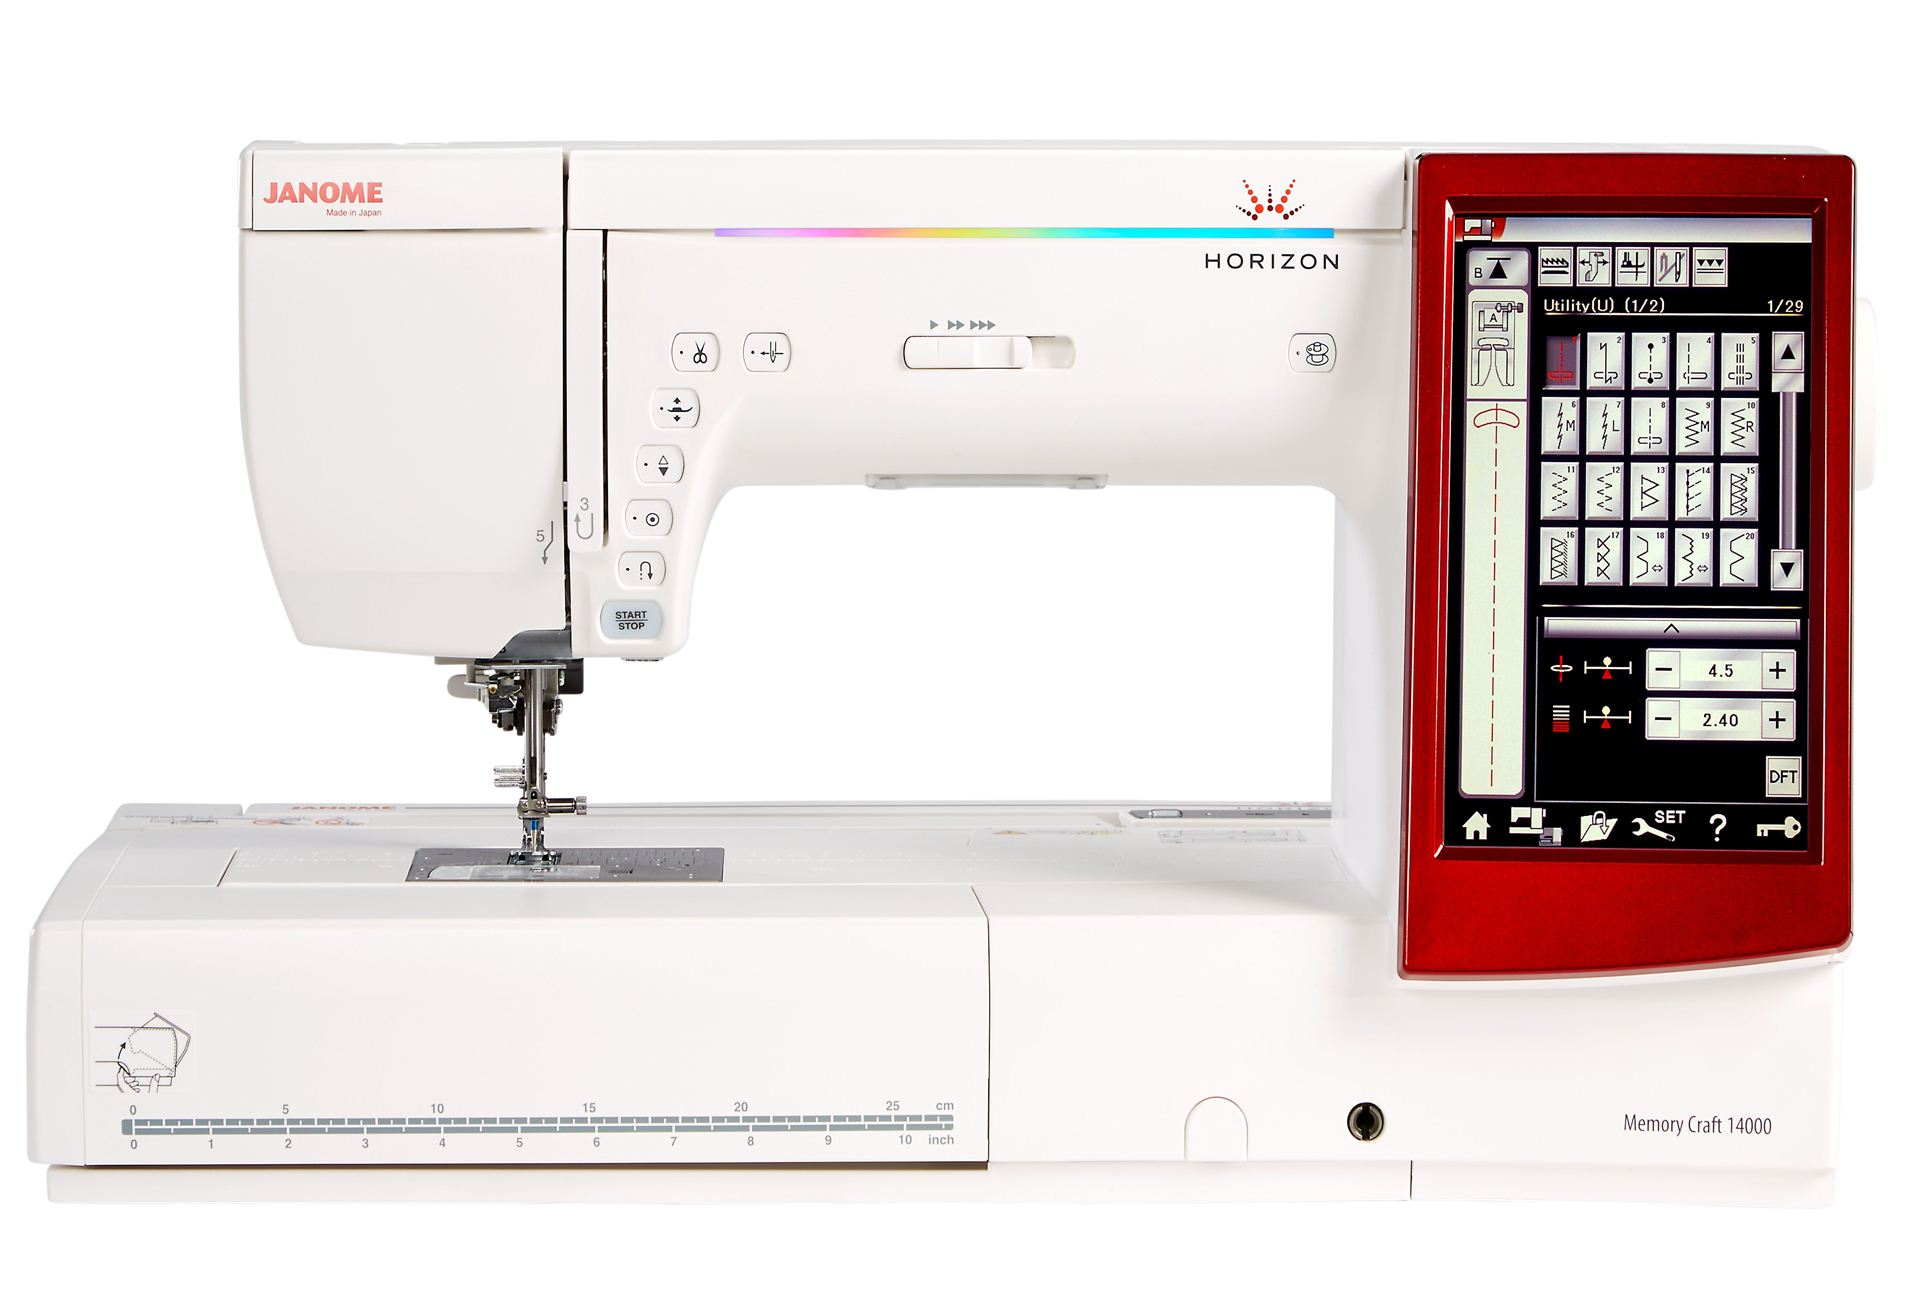 sewing blows sew computerized janome quilt vac n quilting machine